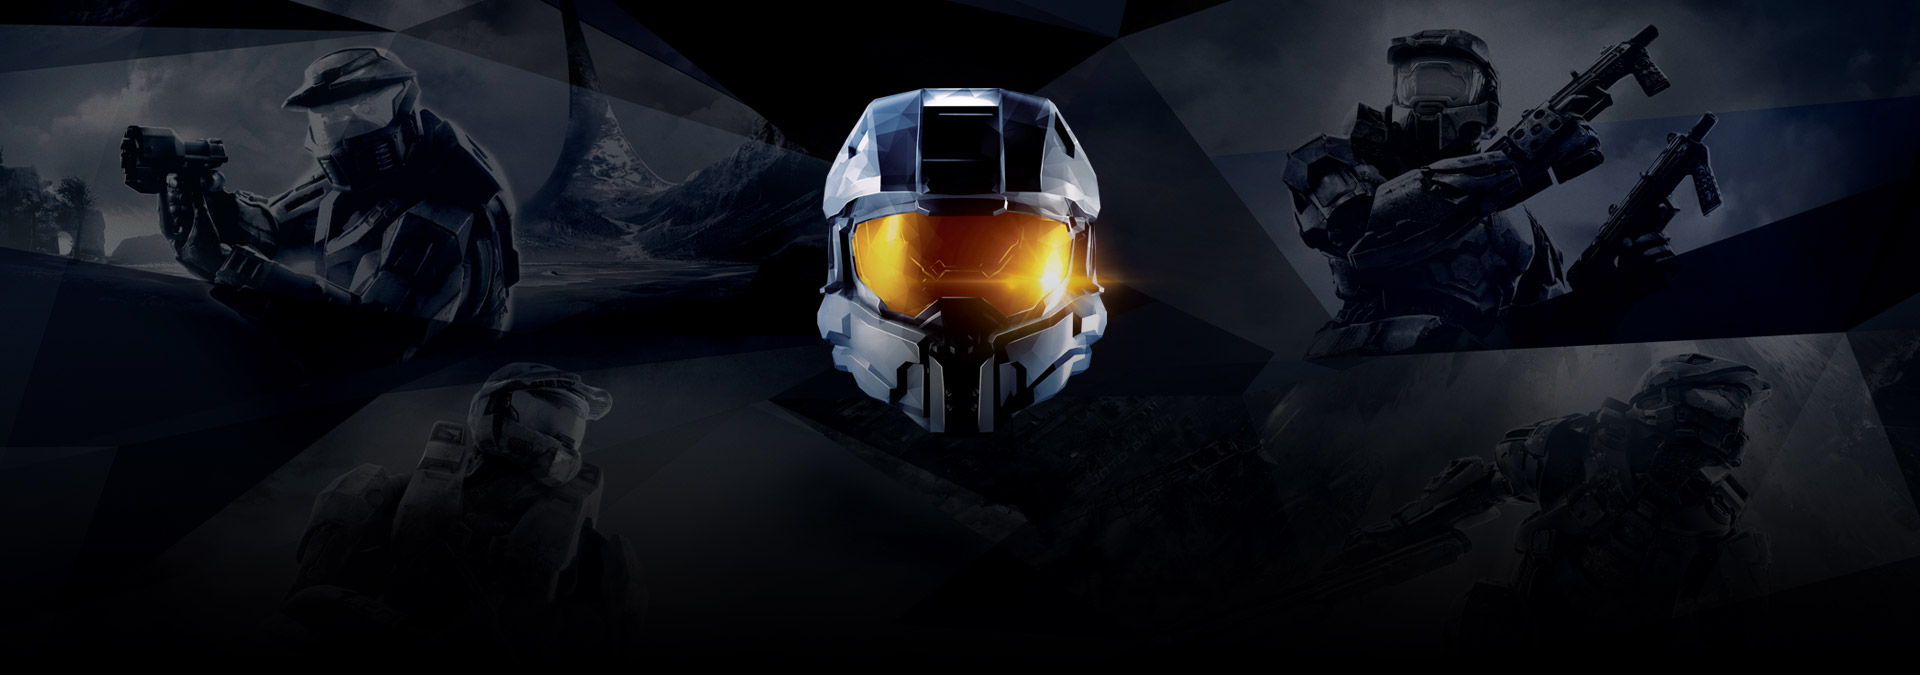 Halo The Master Chief Collection Wallpapers Video Game Hq Halo